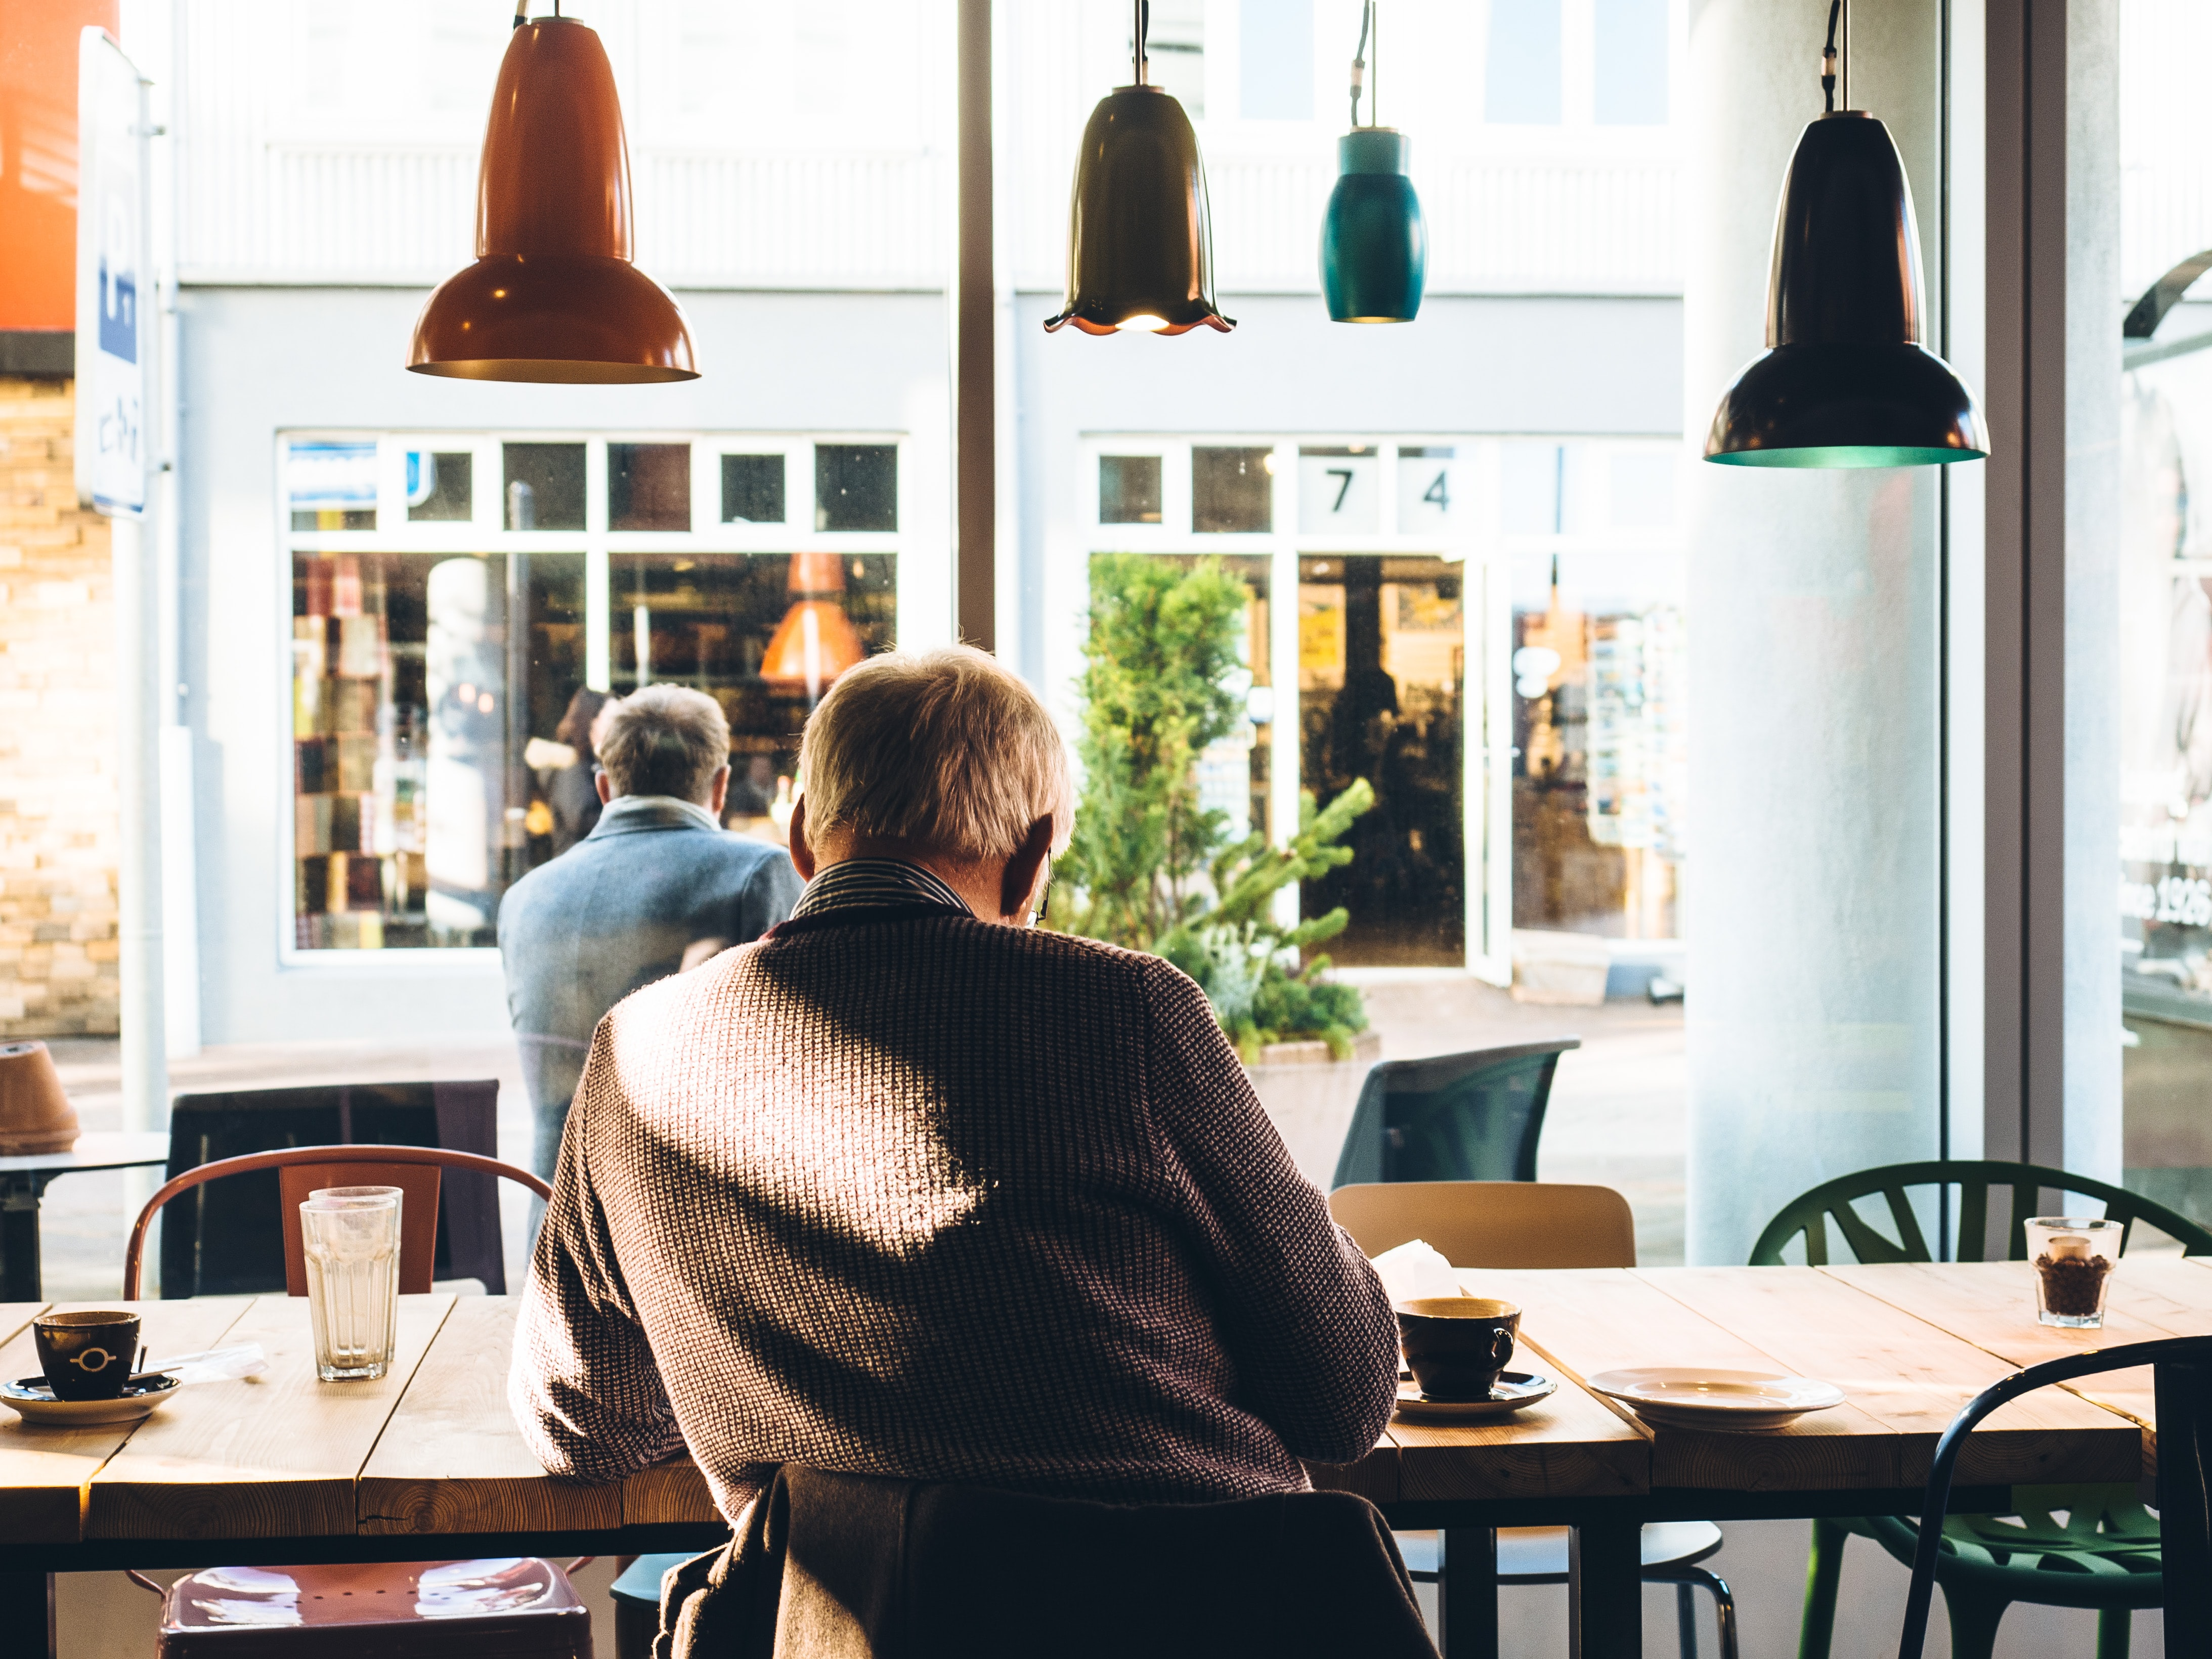 man in chair with table beside coffee